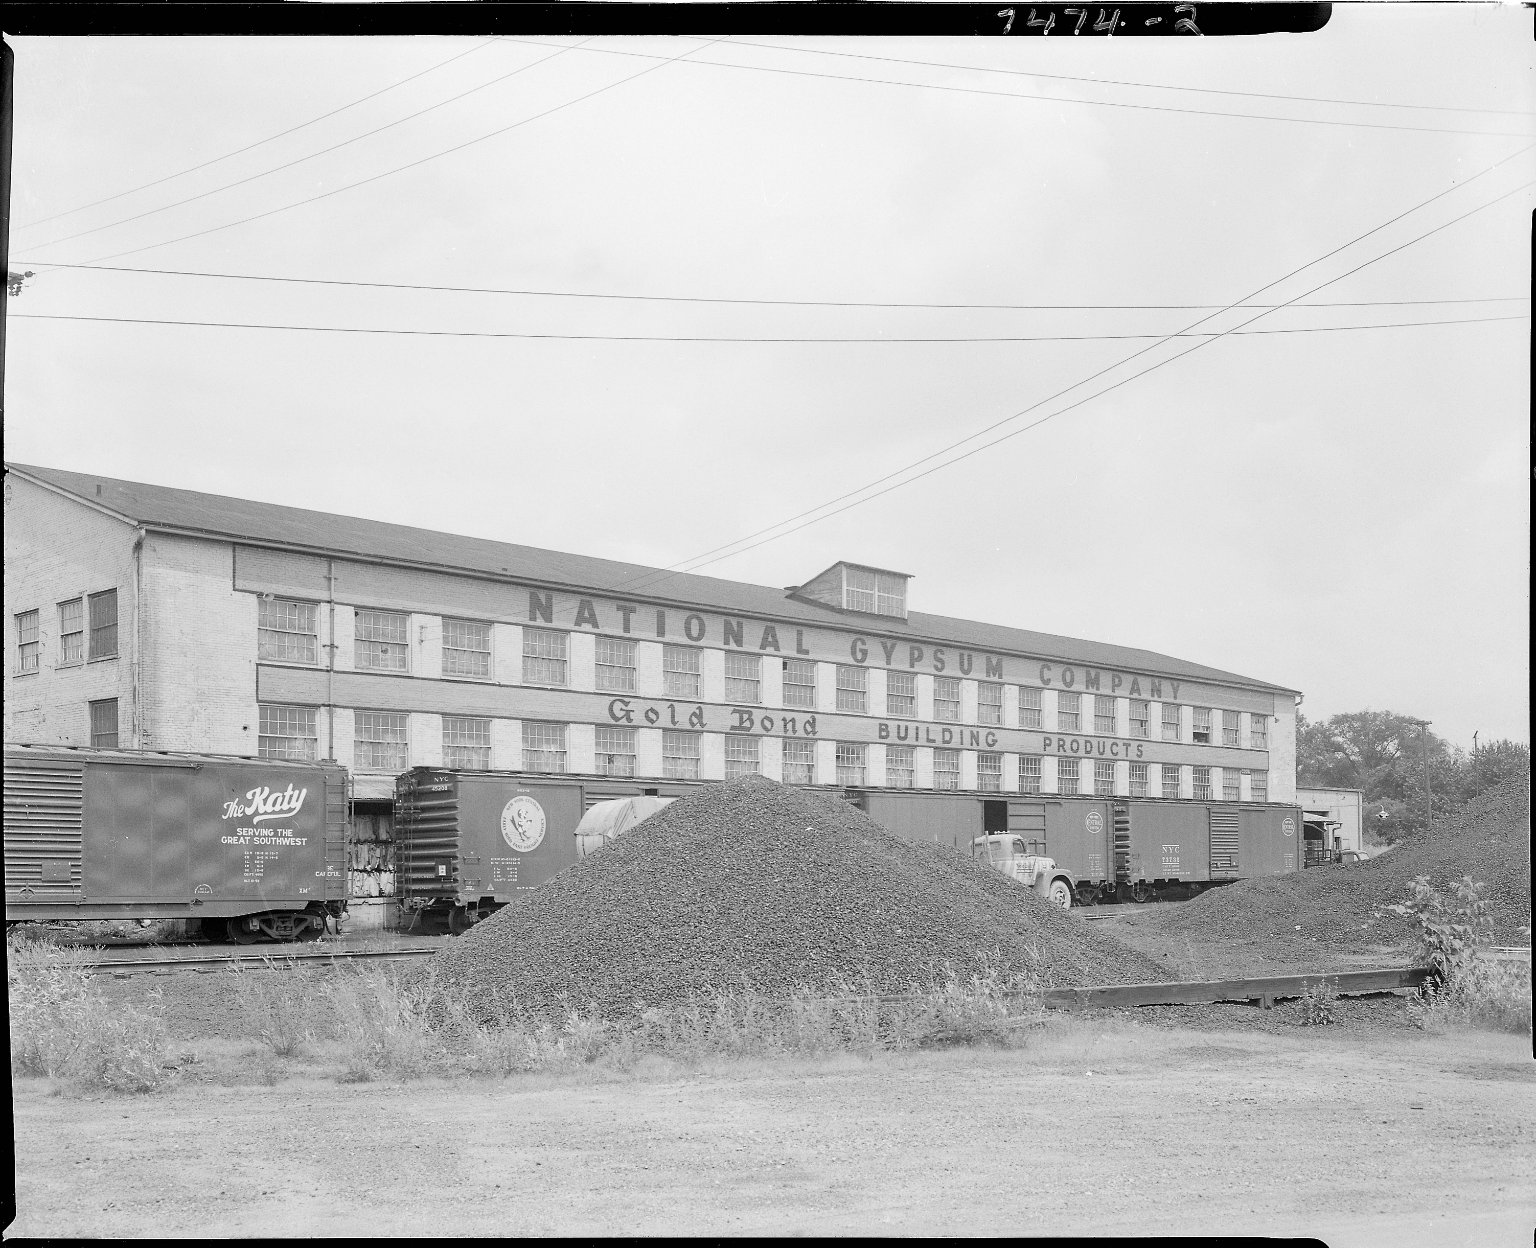 National Gypsum Company, factory, exterior